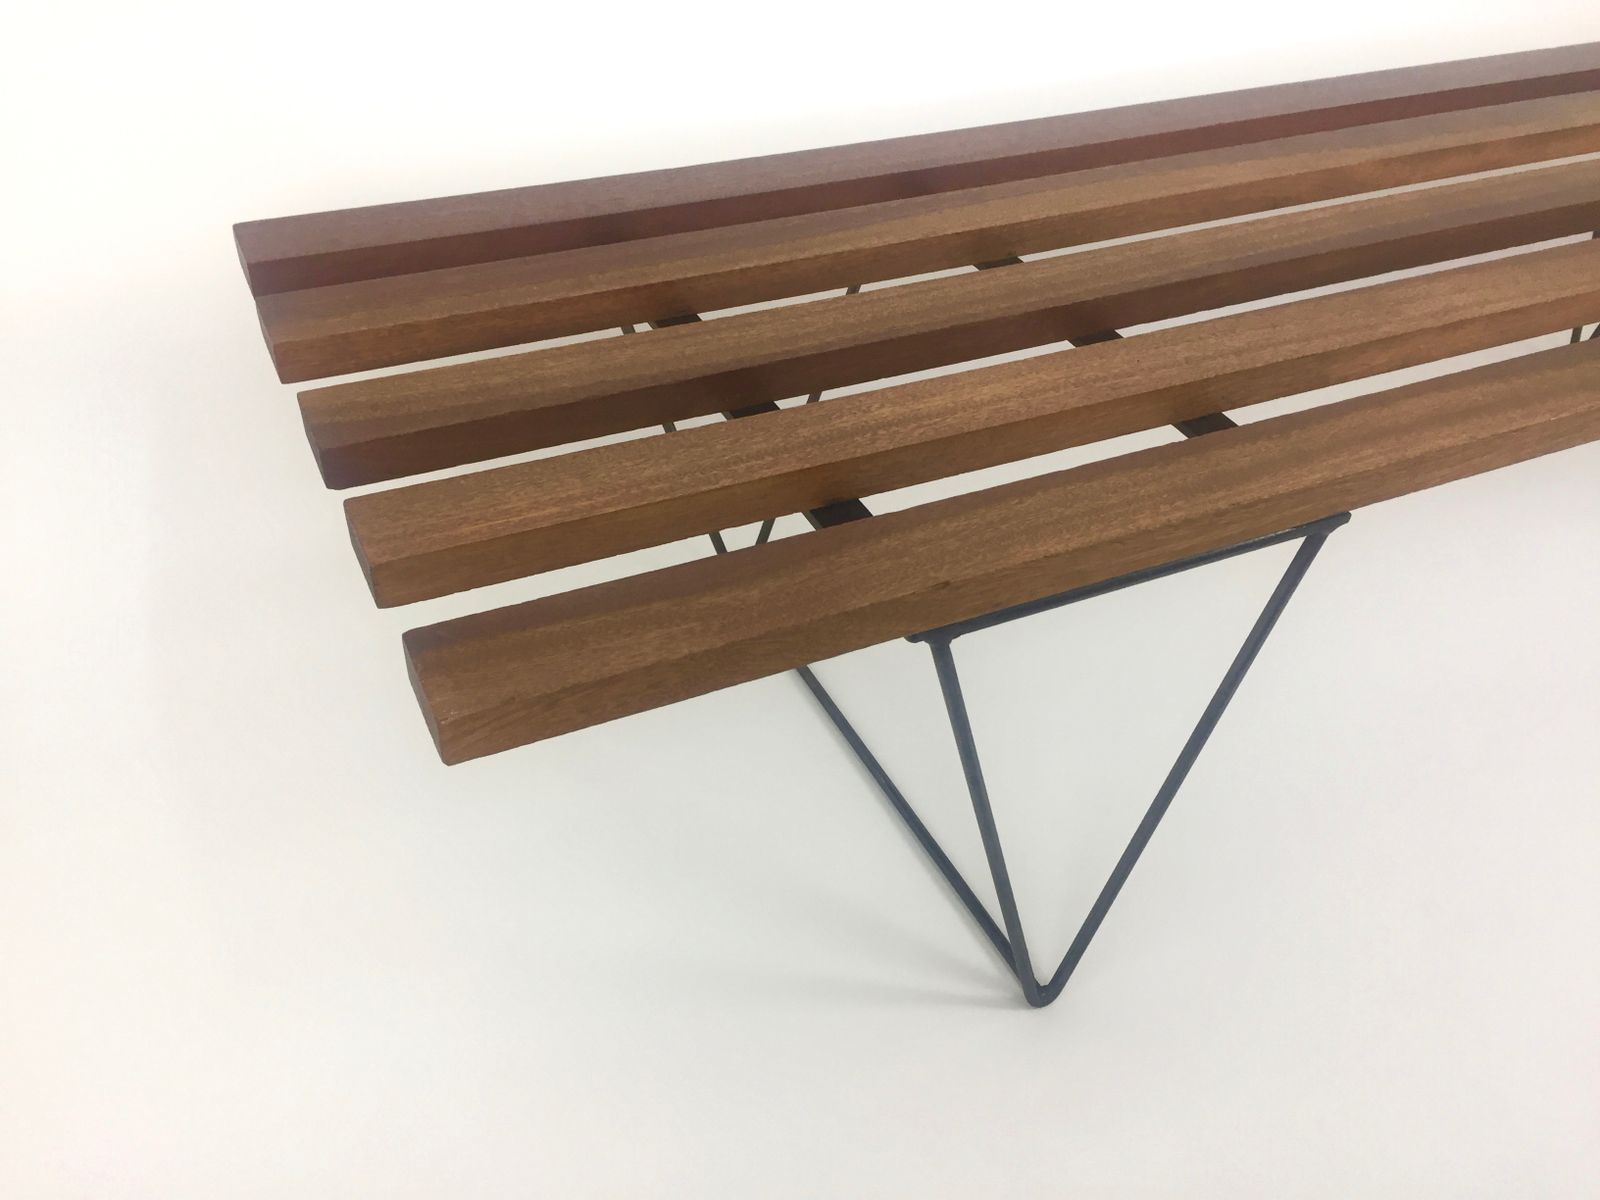 midcentury slatted bench for sale at pamono - midcentury slatted bench  on hold